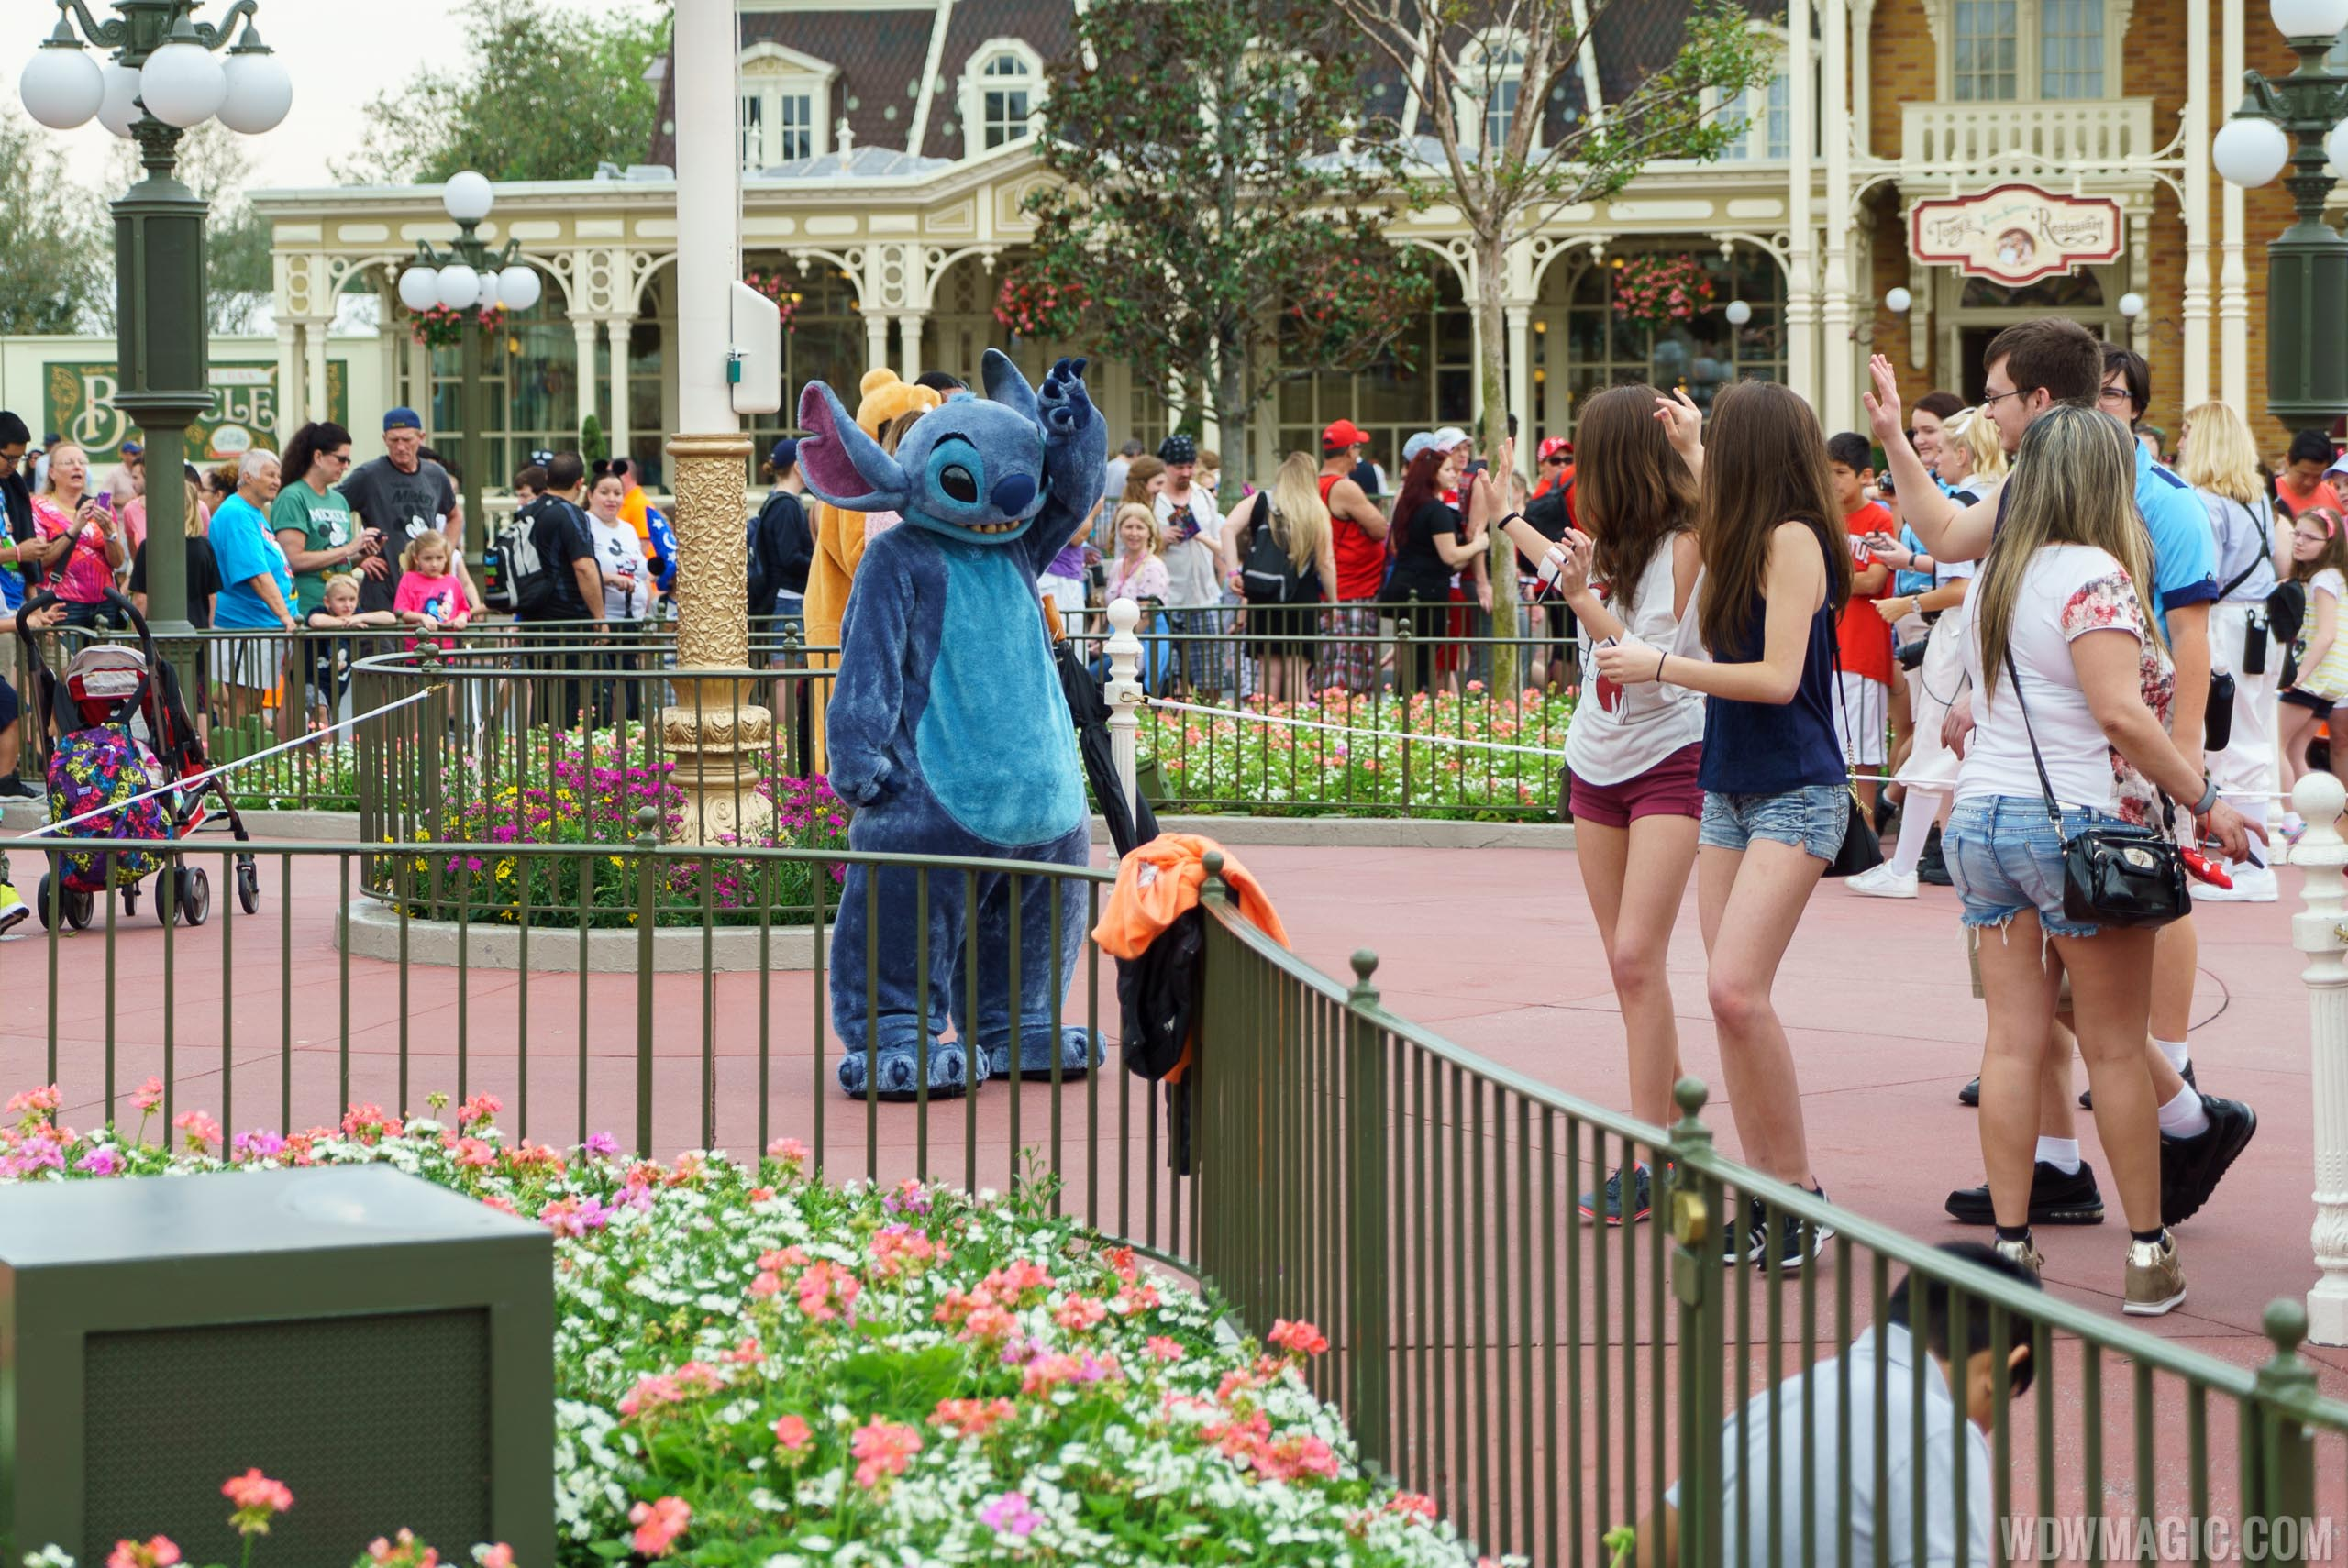 Stitch meet and greet in Town Square at the Magic Kingdom